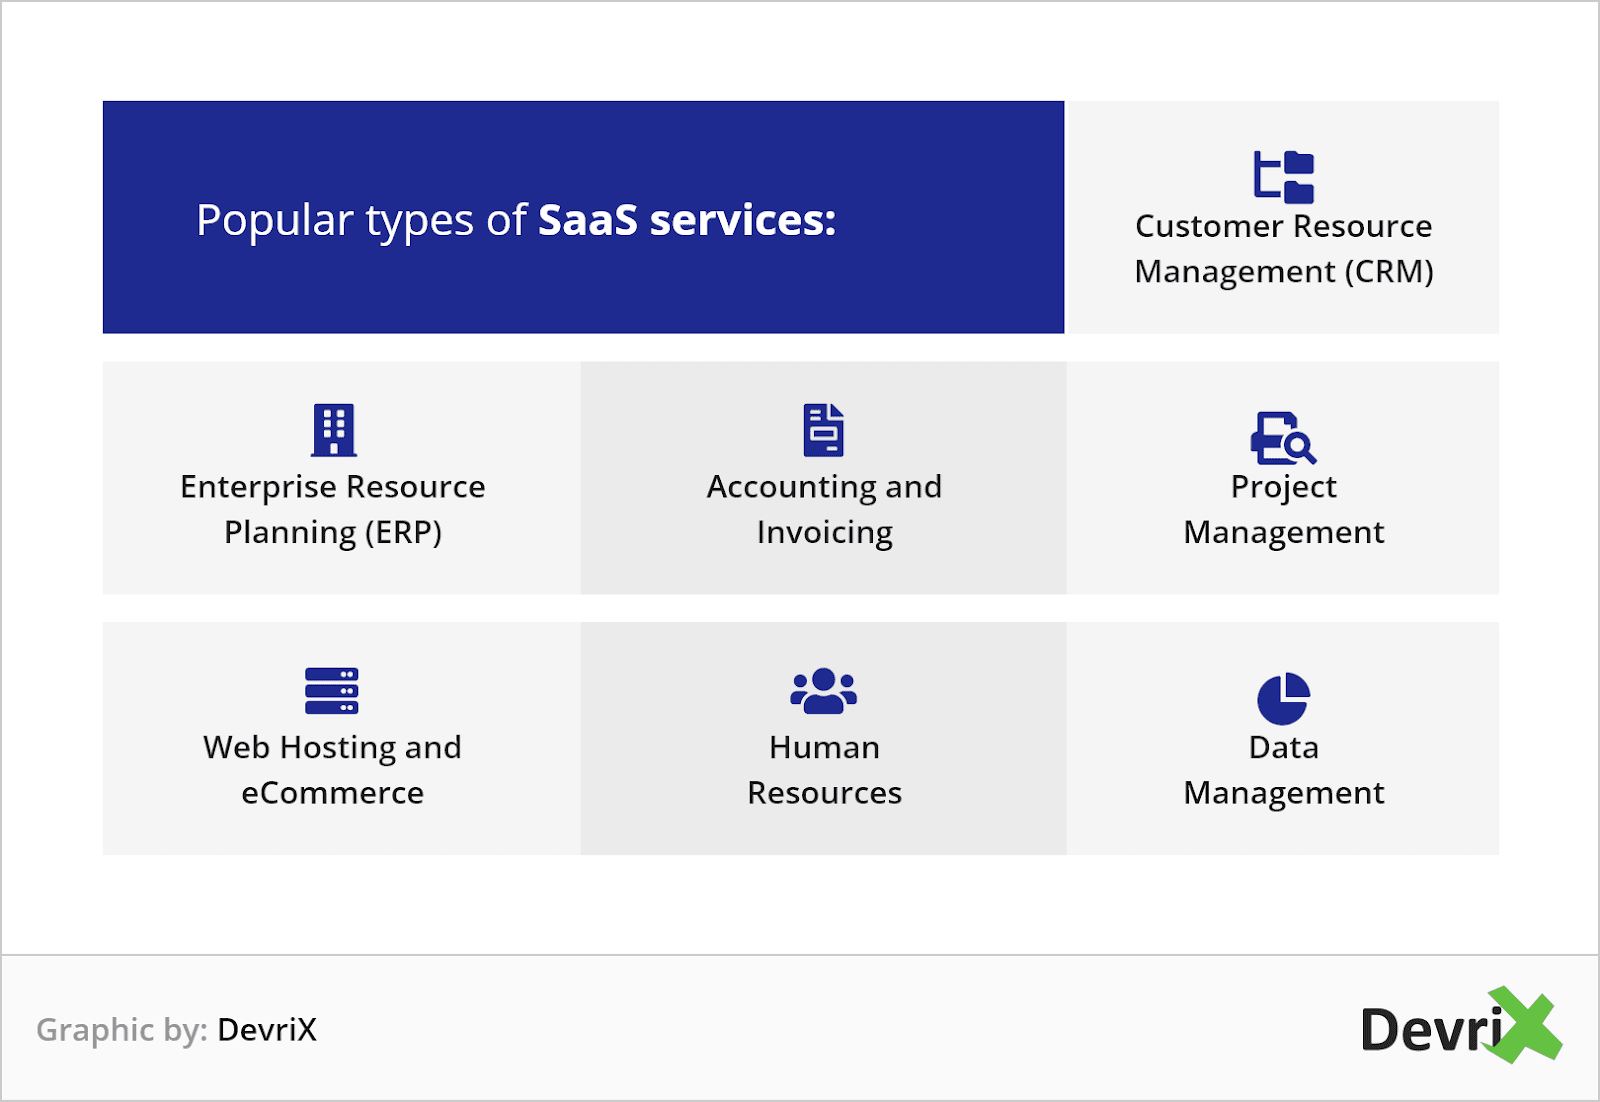 Popular types of SaaS services@2x